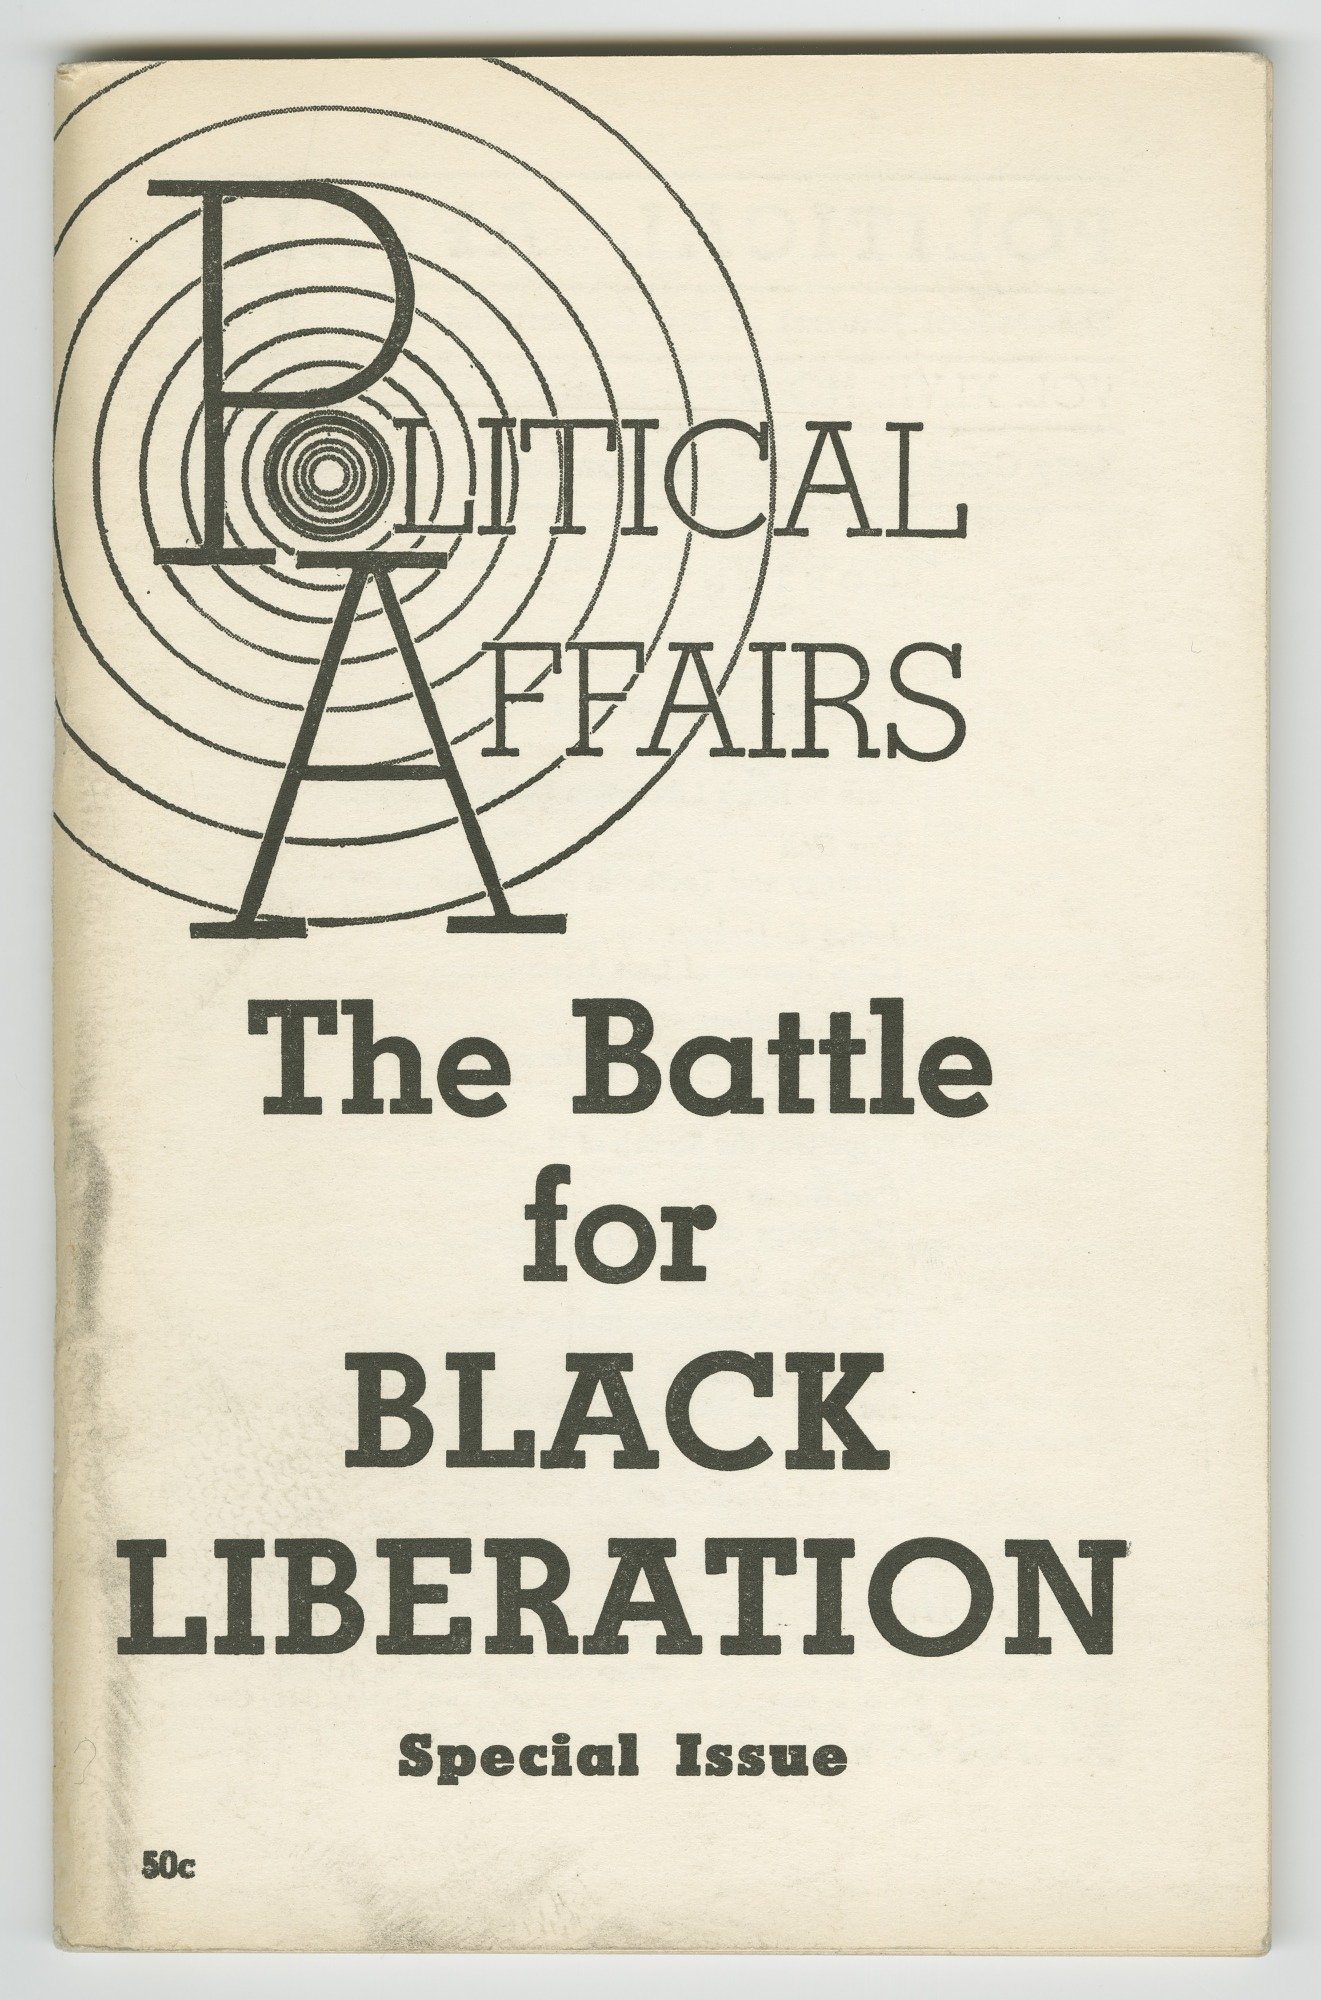 Image for Political Affairs Vol. XLVII No. 2: The Battle for Black Liberation